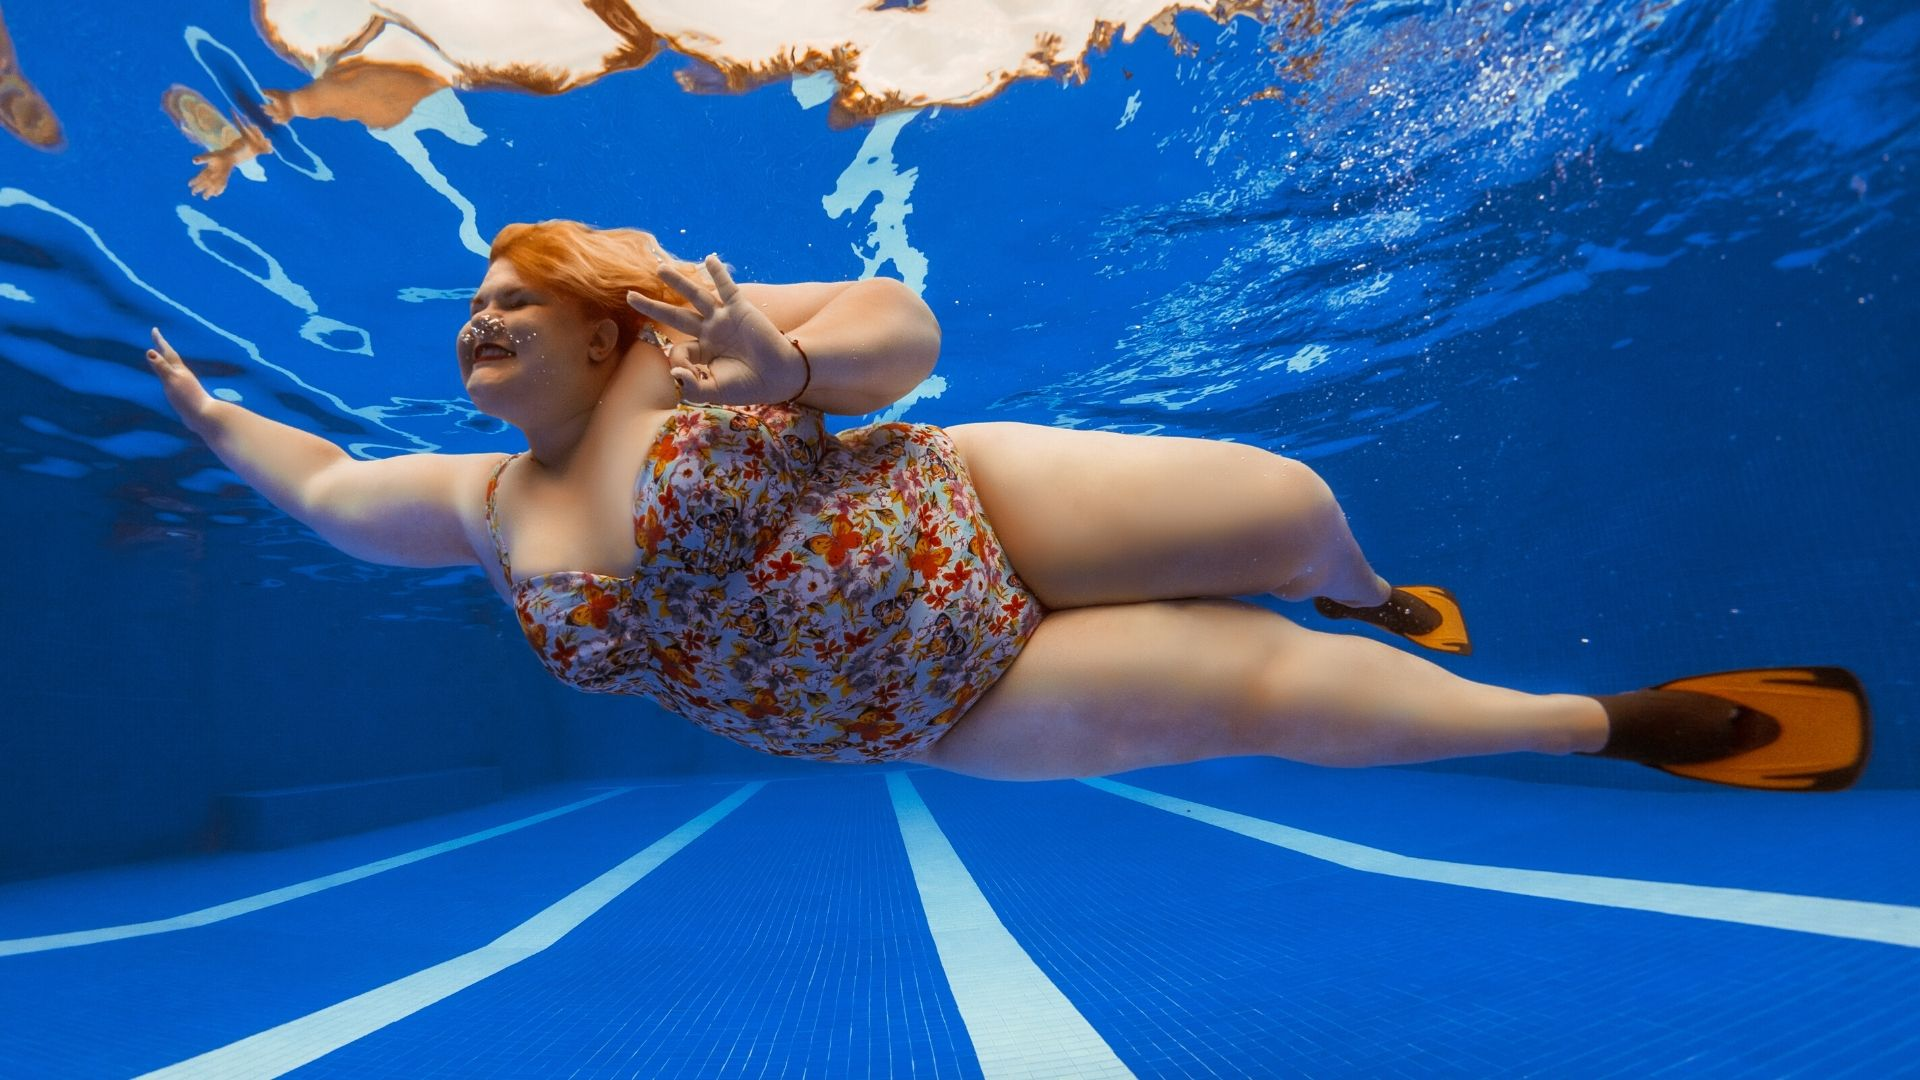 Obese woman swimming